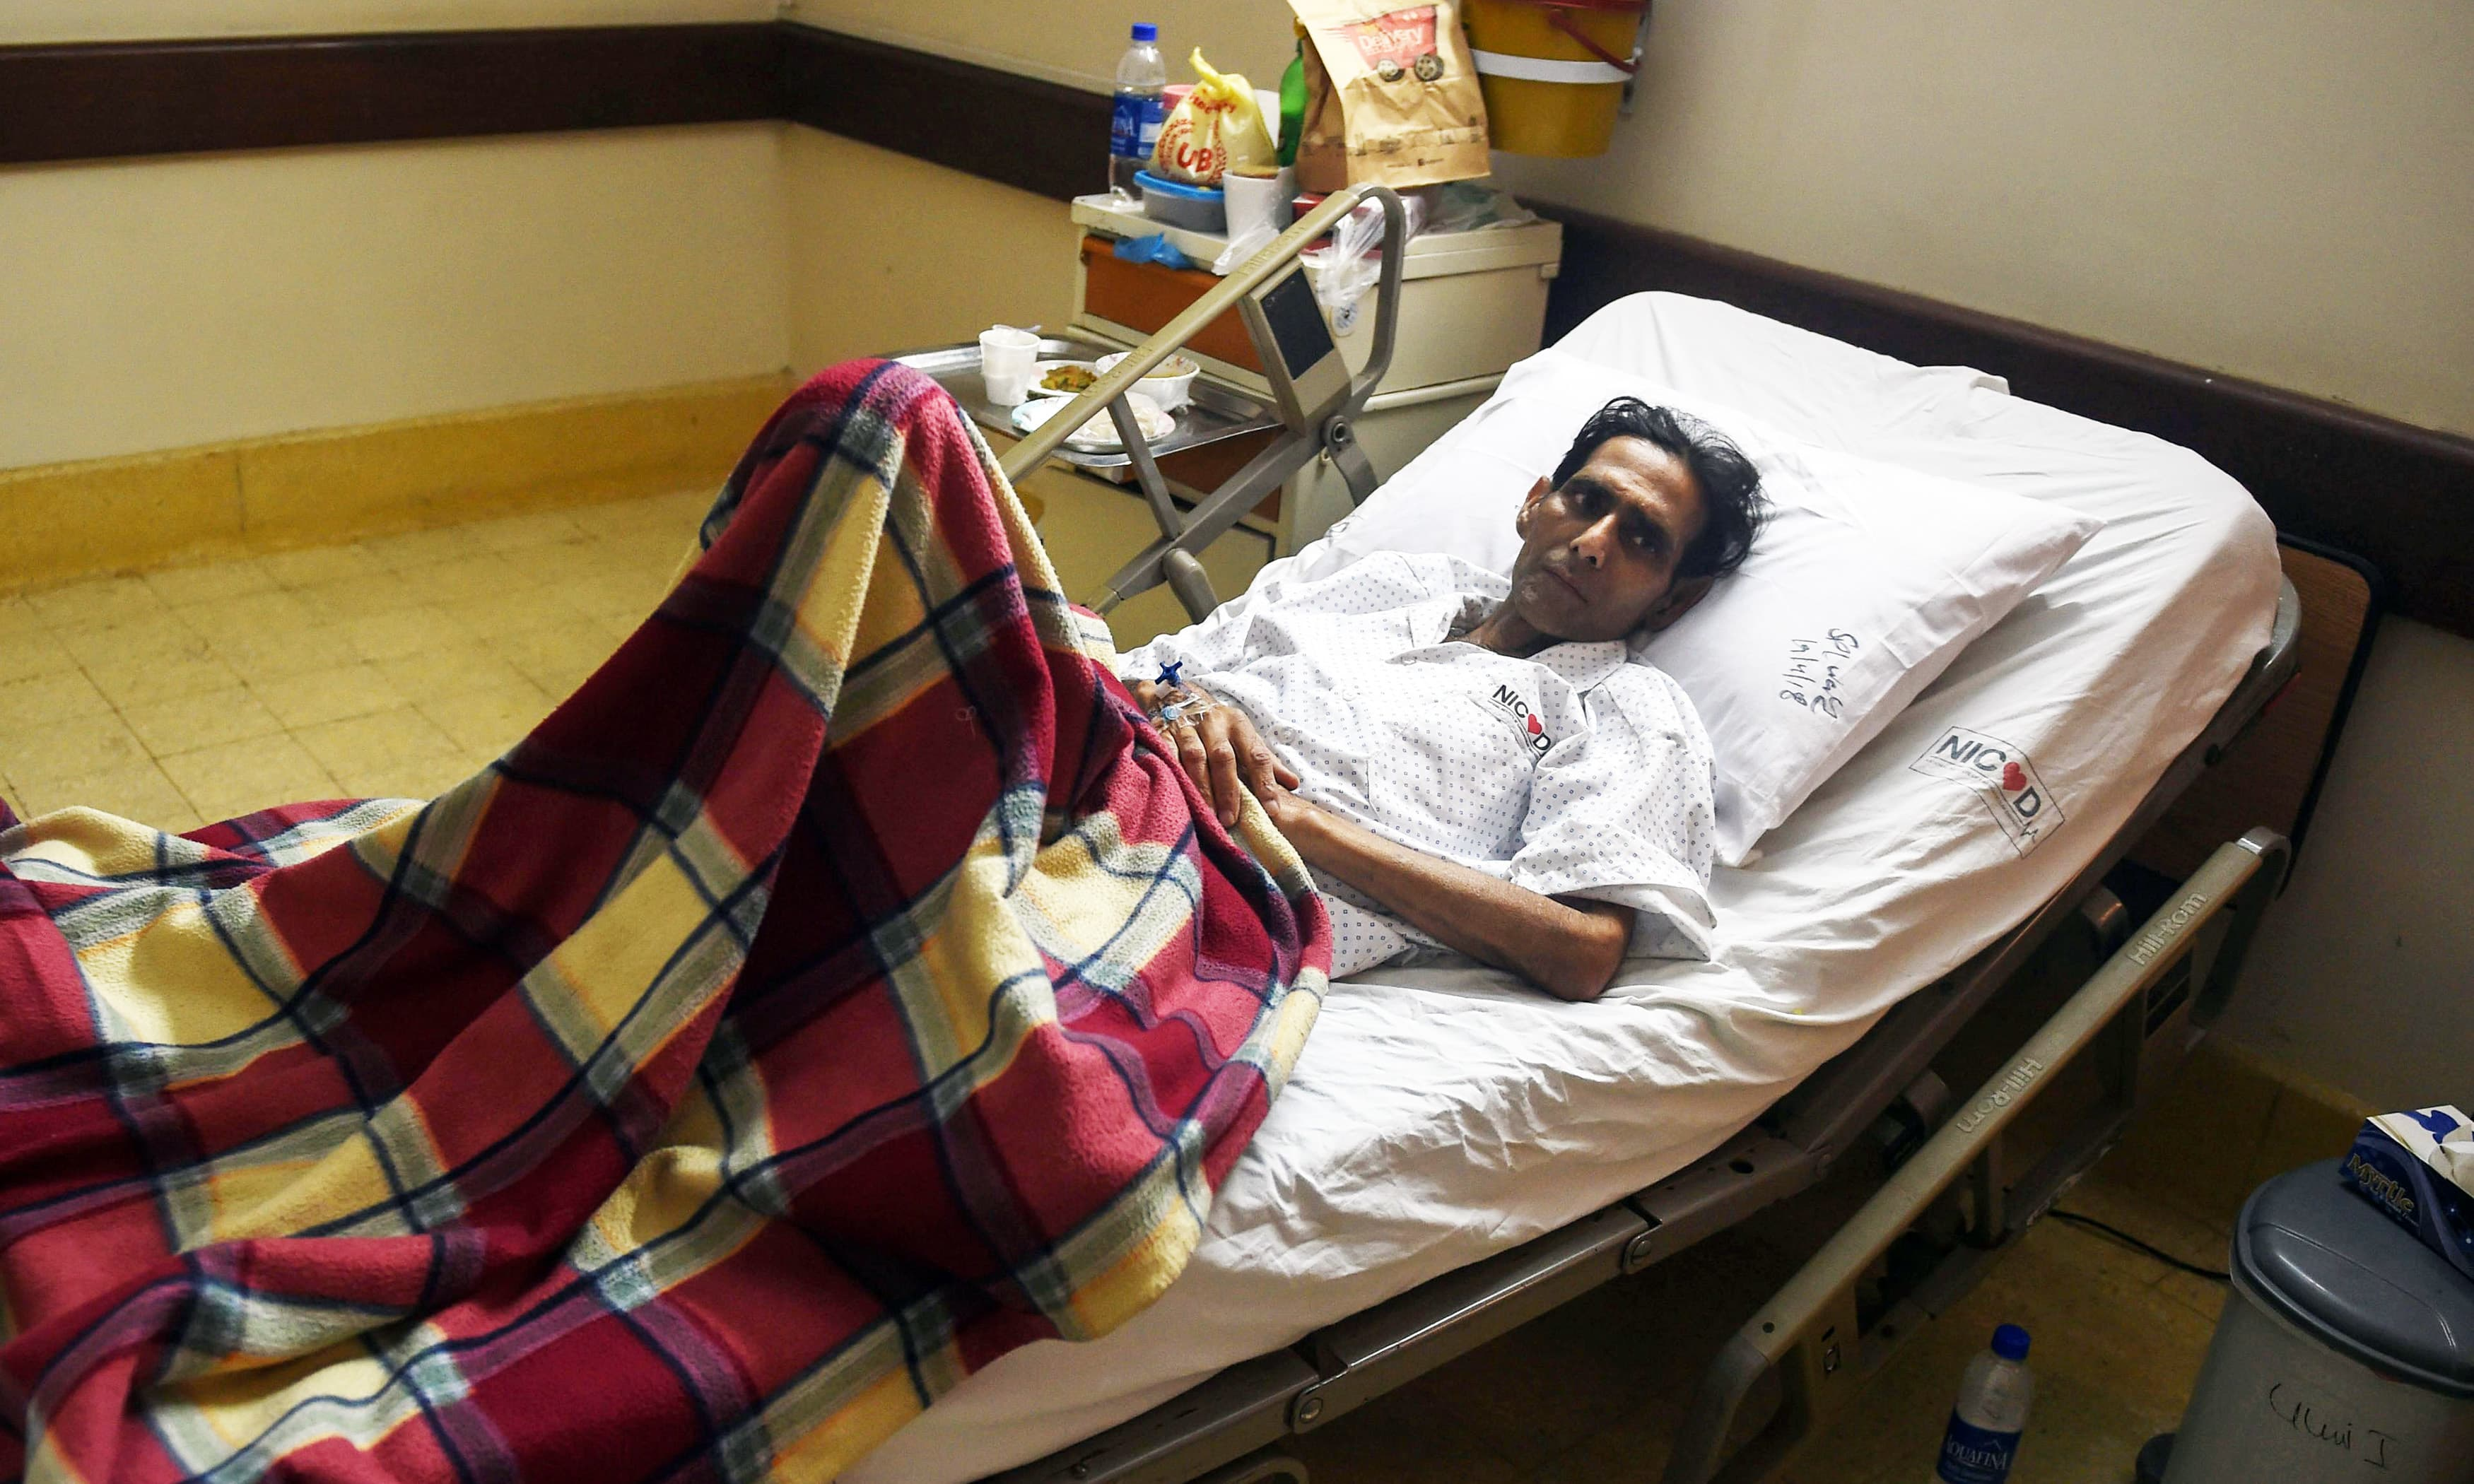 Former field hockey goalkeeper Mansoor Ahmed being treated at a hospital in Karachi, following complications stemming from a pacemaker and stents implanted in his heart. —AFP